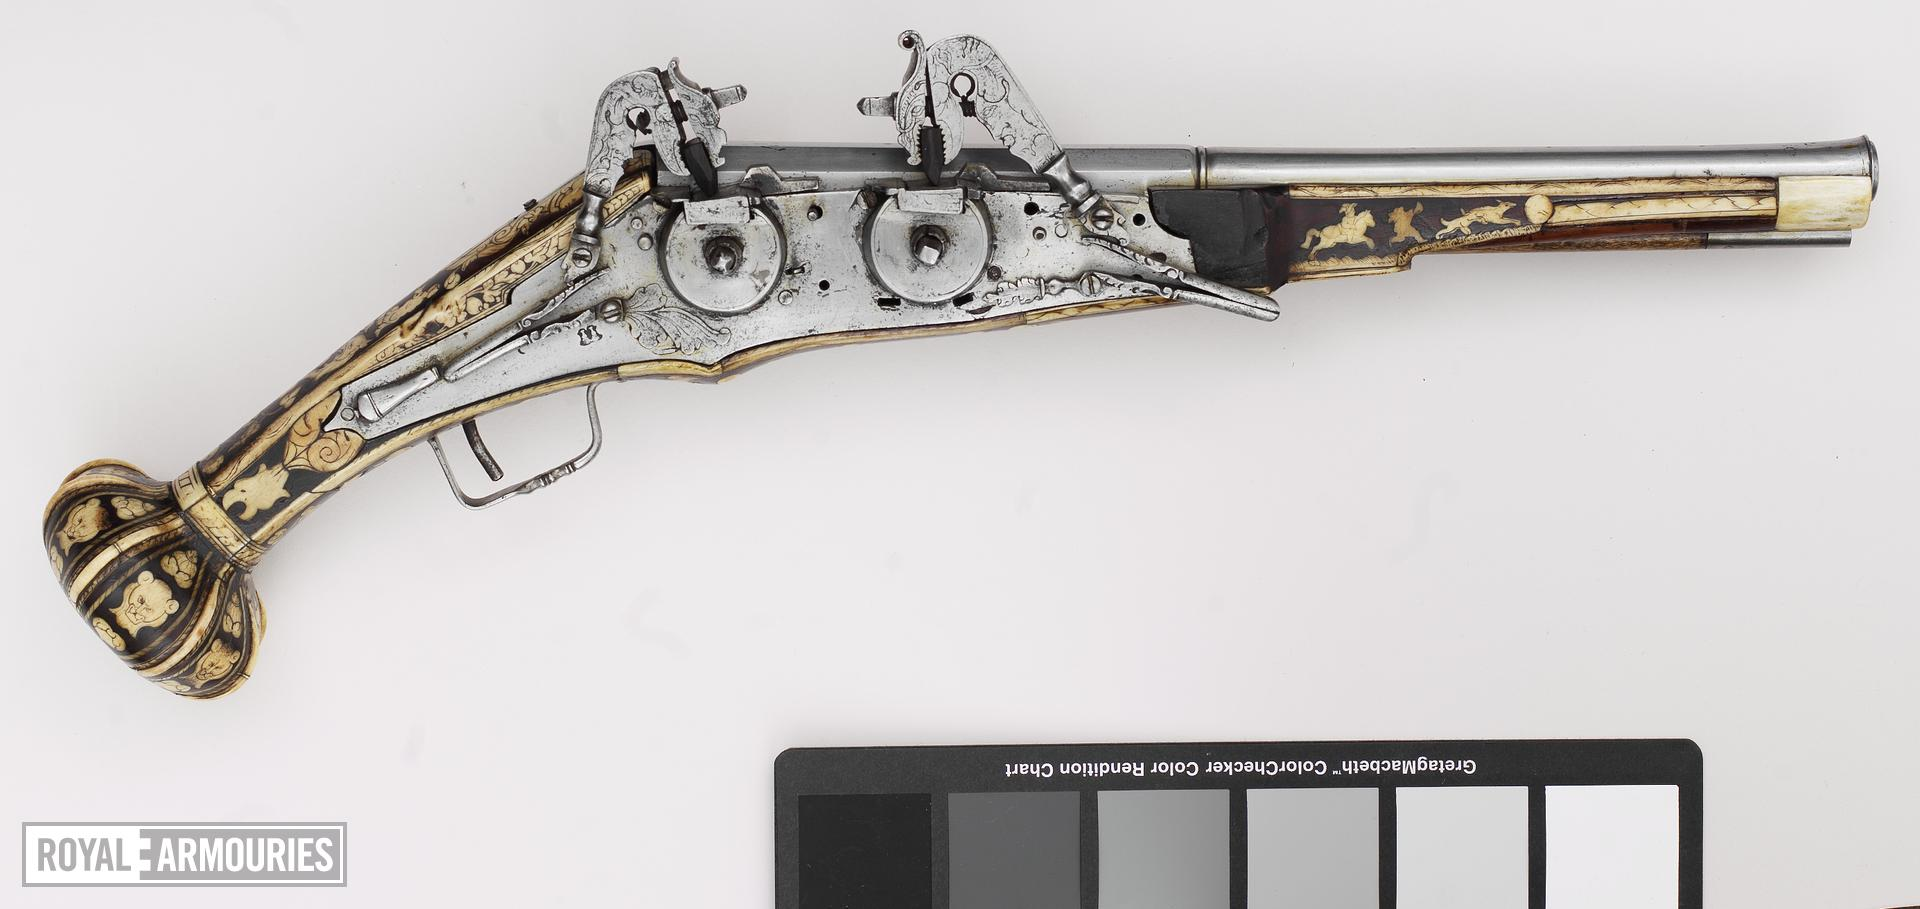 Wheellock superimposed pistol To fire two superimposed charges